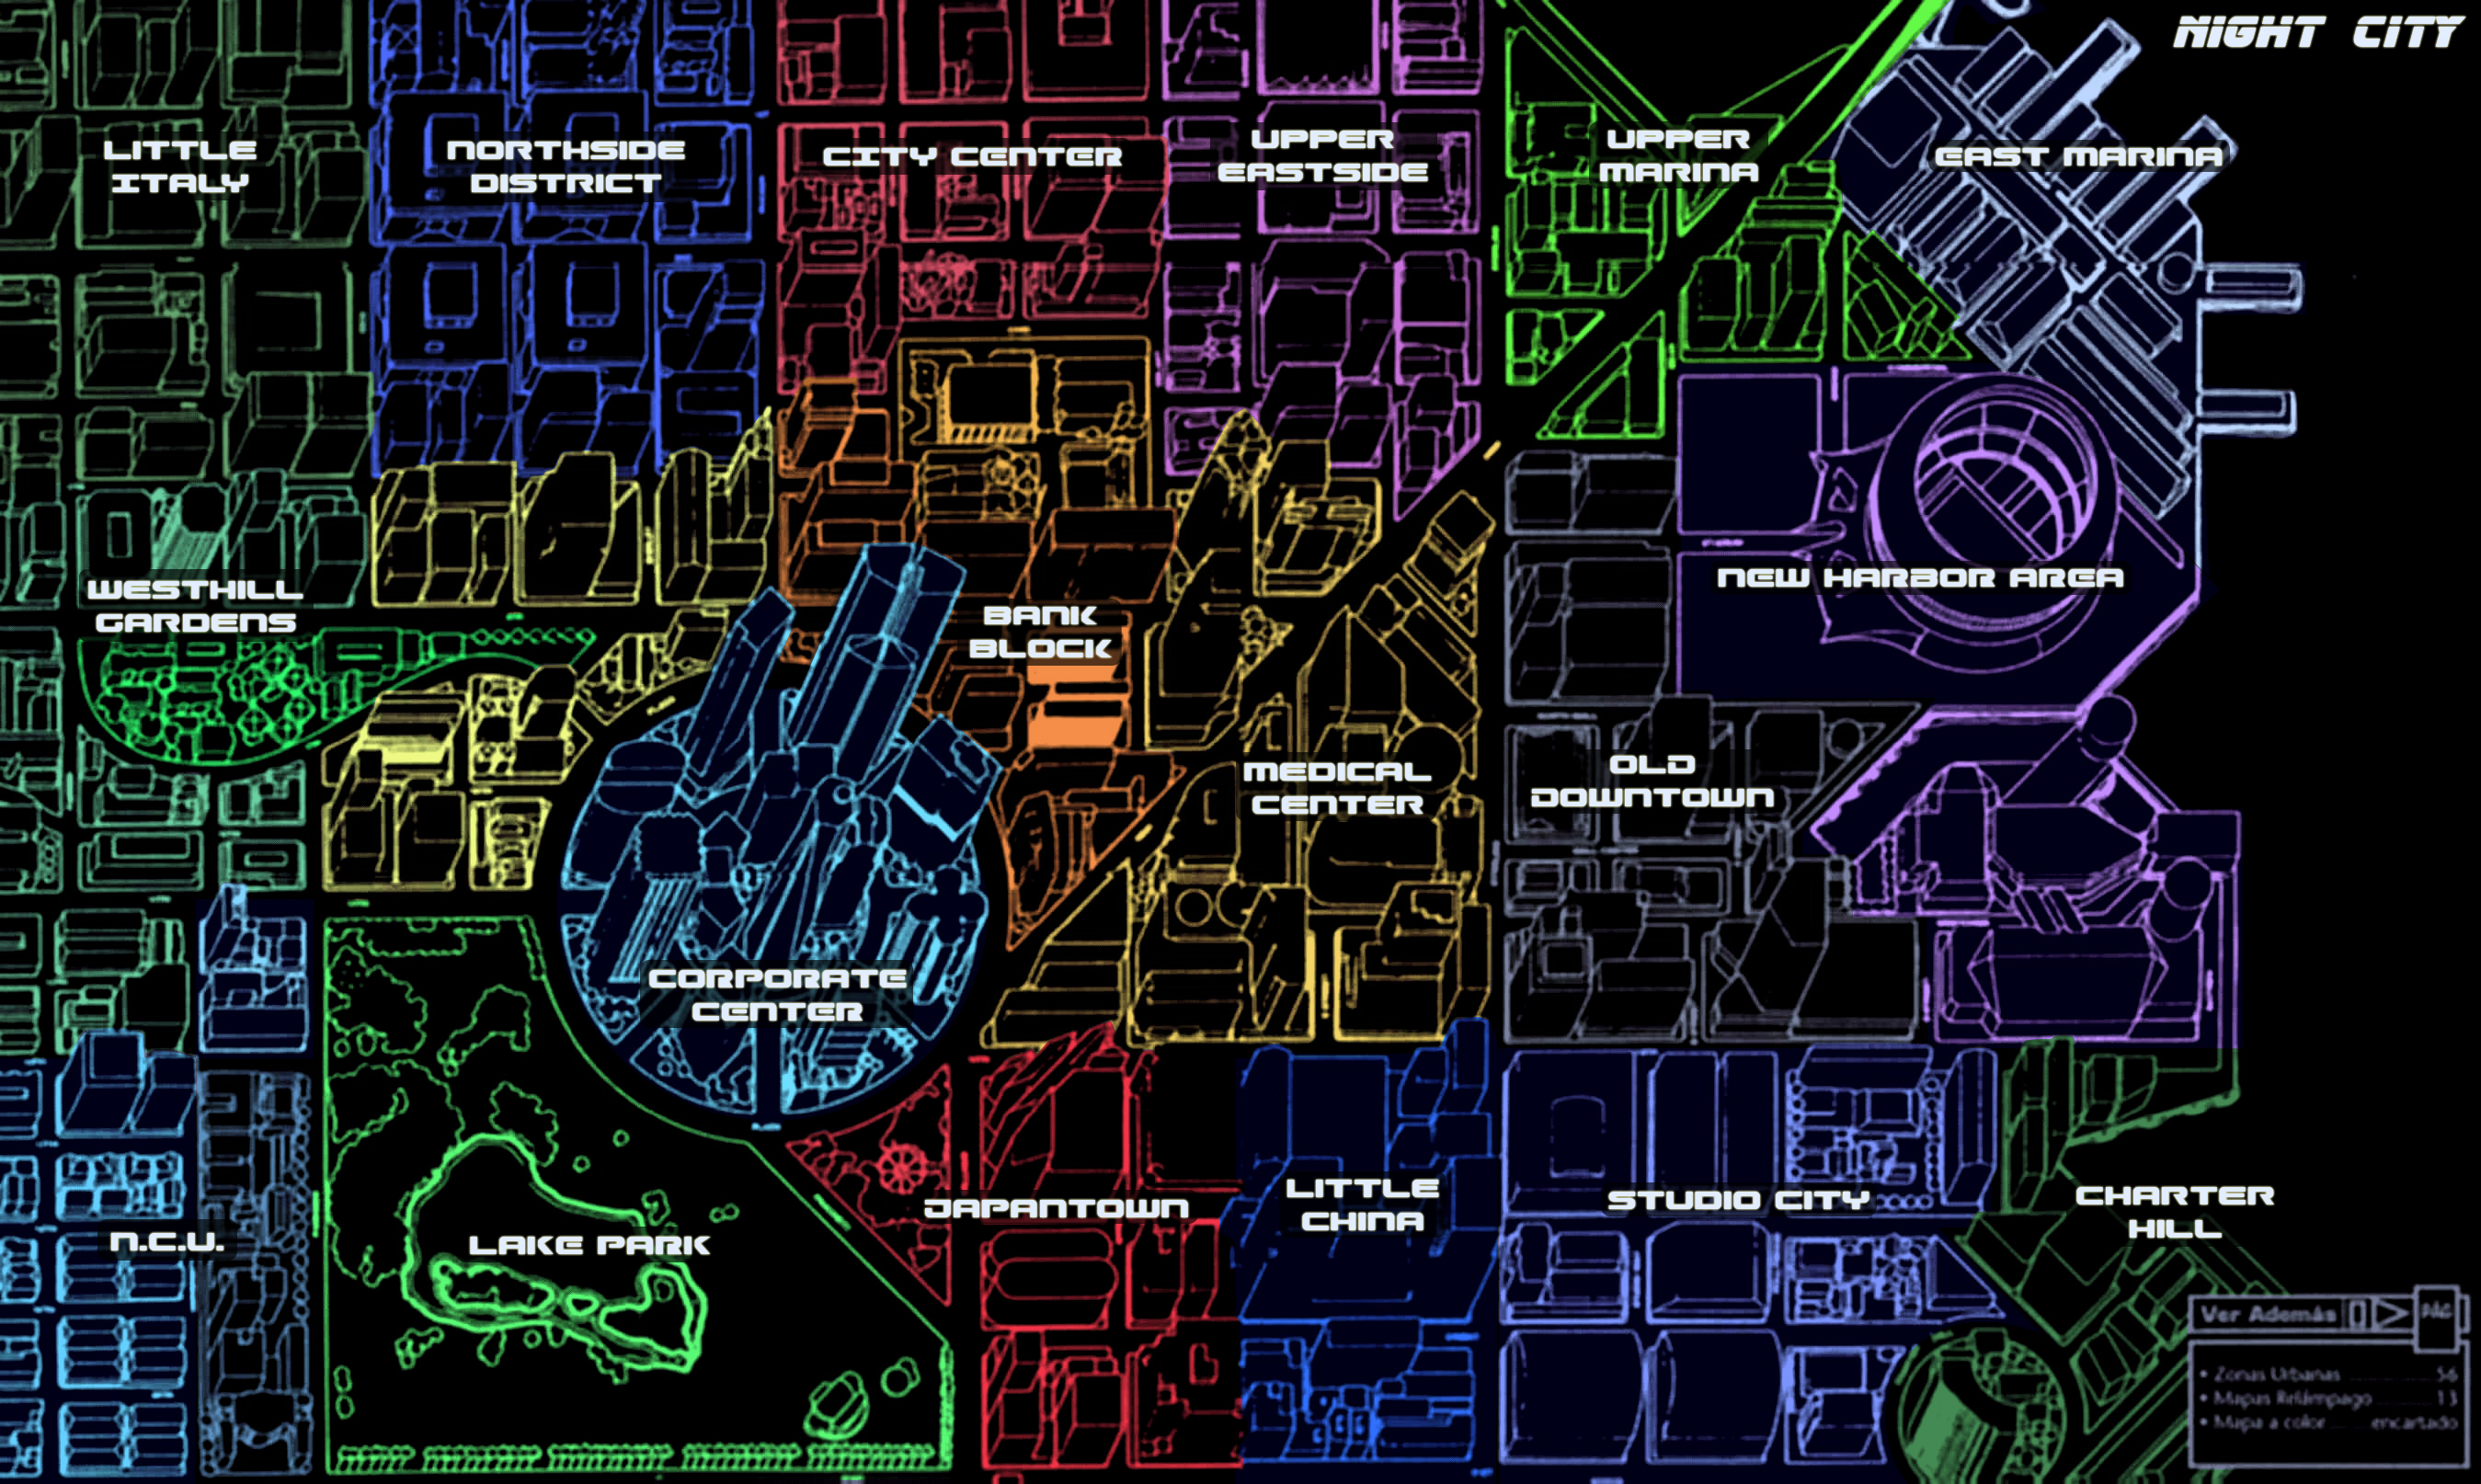 Cyberpunk_2020_-_Map_-_Color_Coded_Night_City_Map.jpg